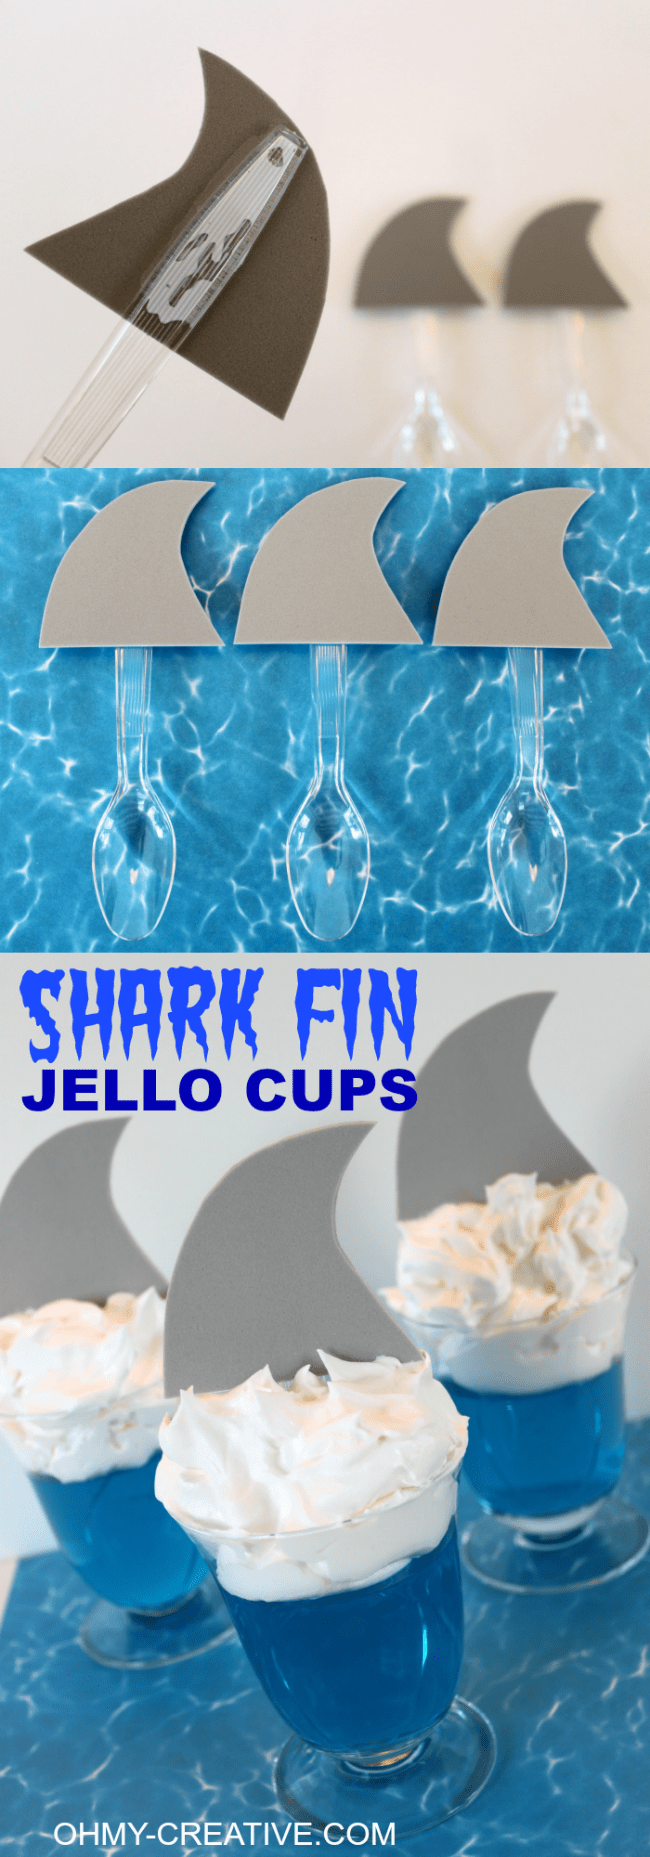 Shark Fin Jell-O Cups for shark or summer theme party theme. These are super cute and so easy to make for the kids! | OHMY-CREATIVE.COM